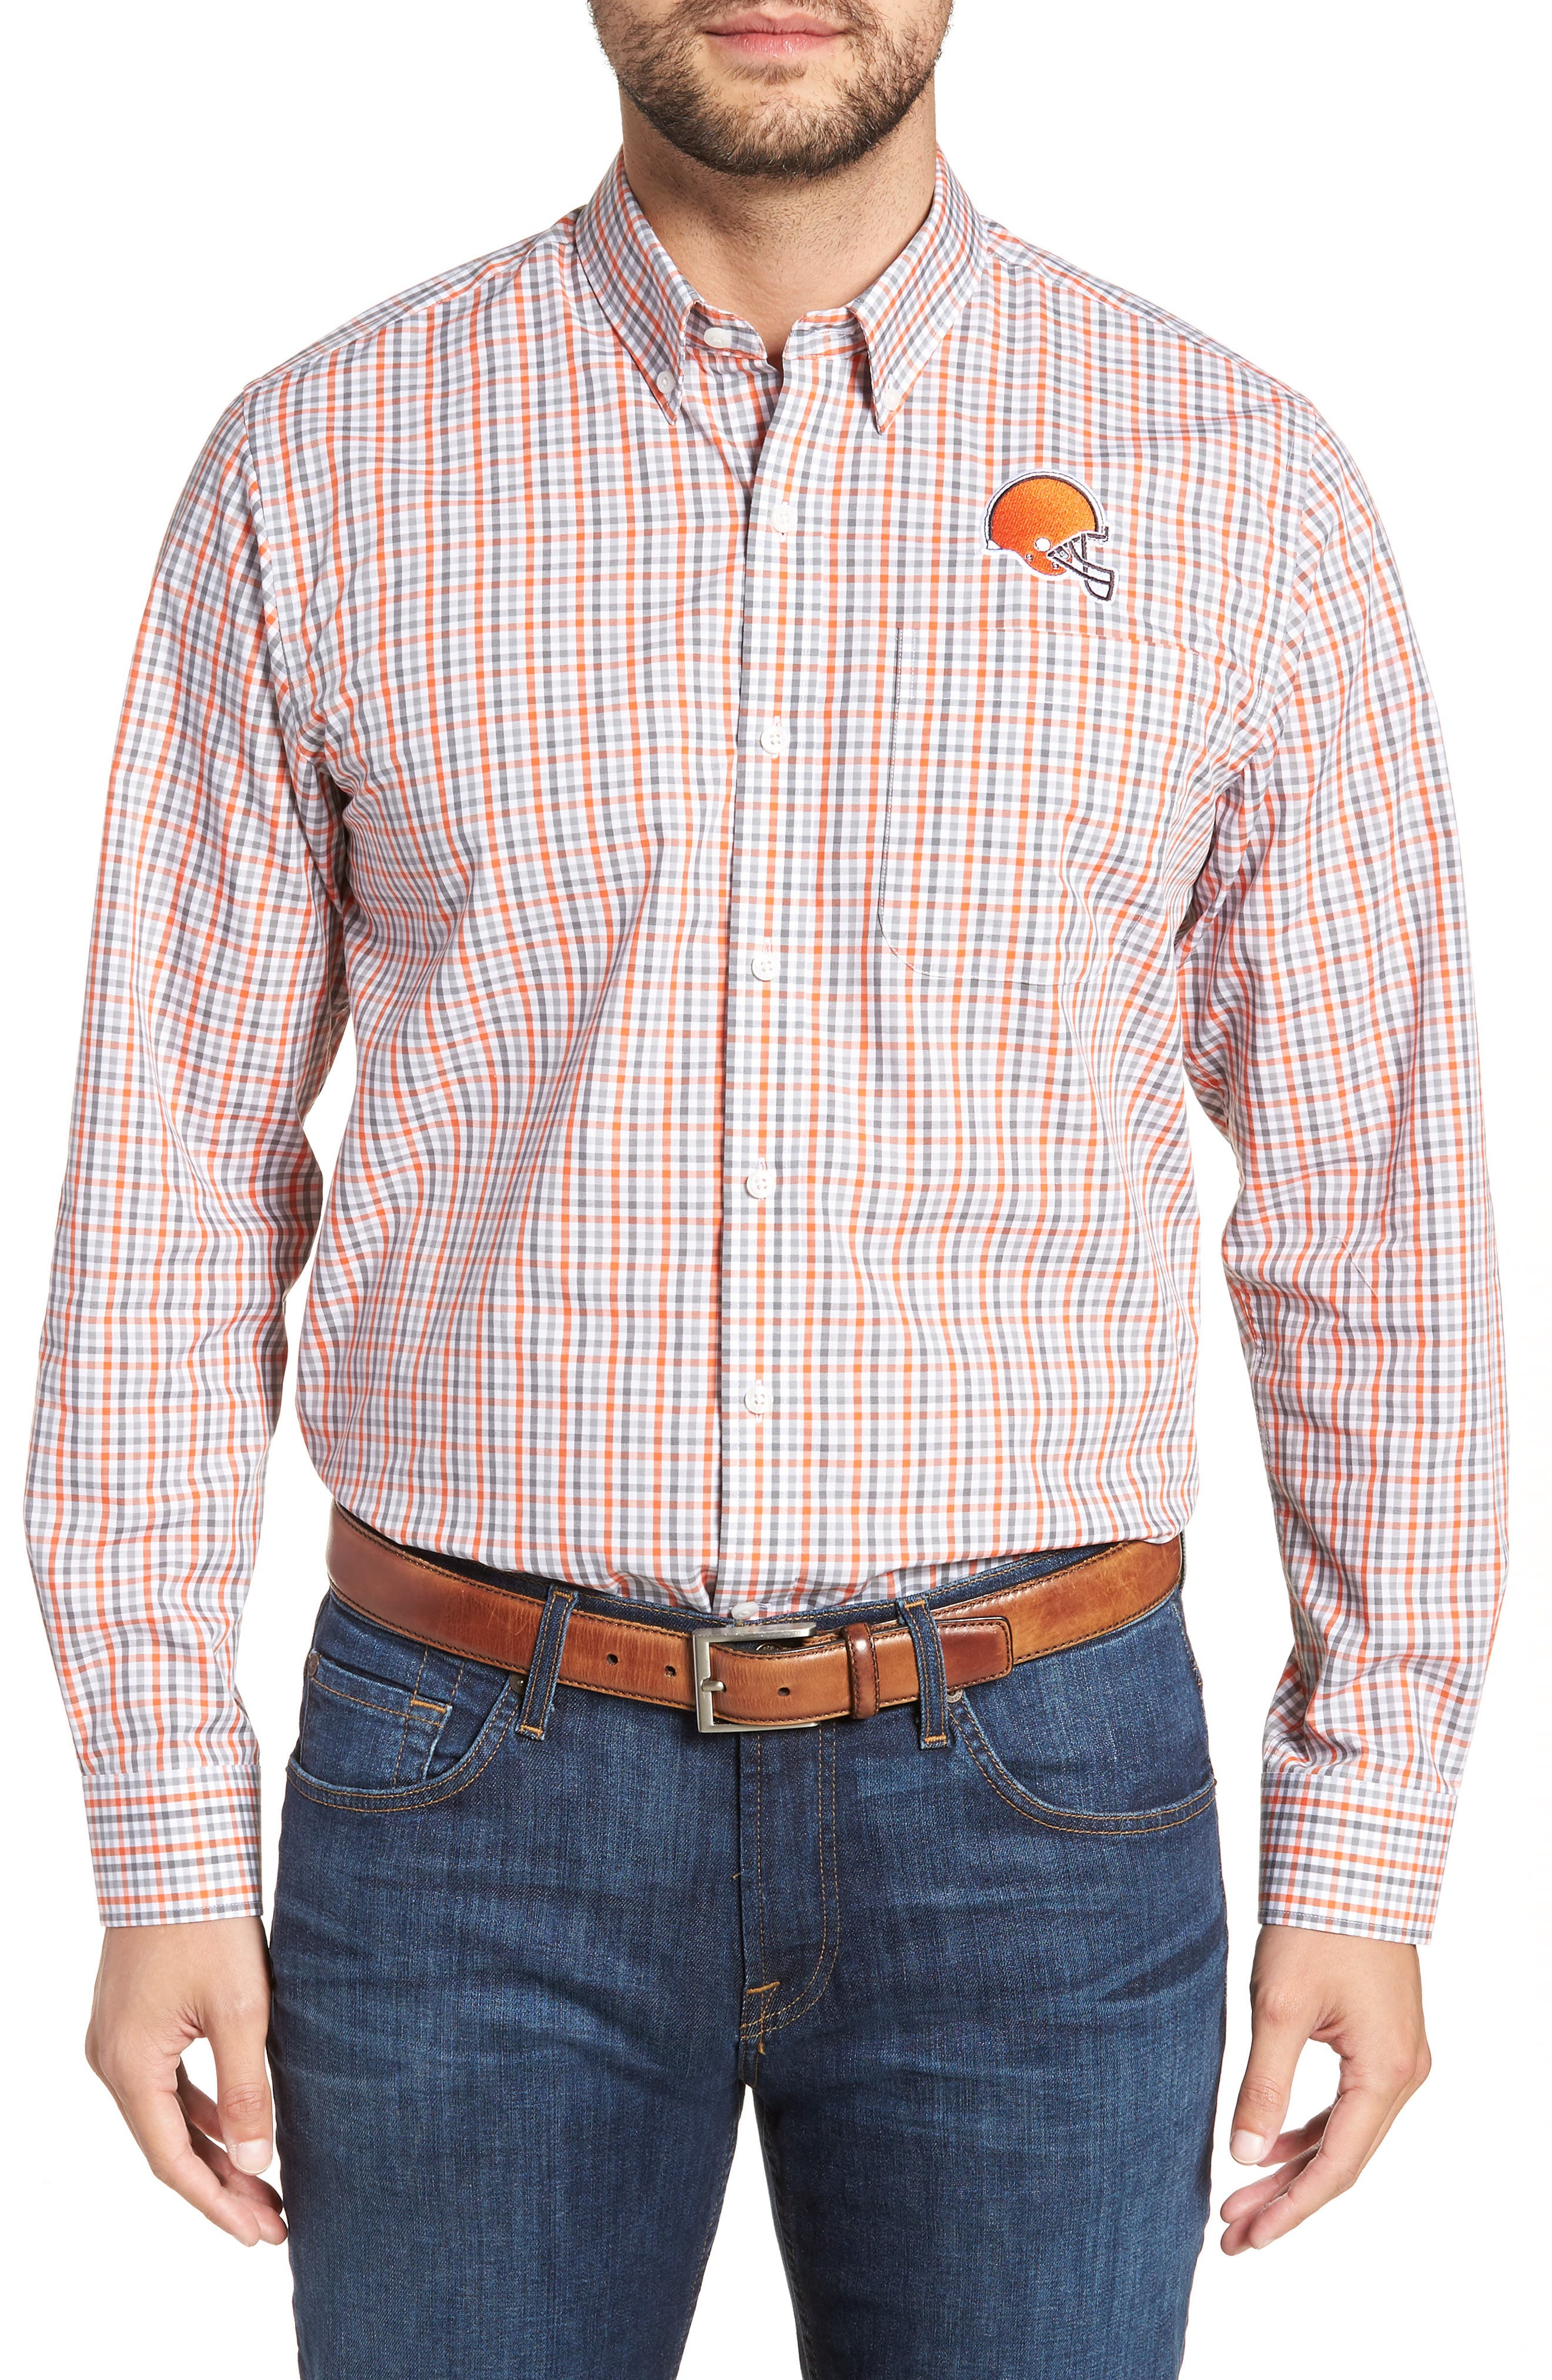 Cleveland Browns - Gilman Regular Fit Plaid Sport Shirt,                             Main thumbnail 1, color,                             COLLEGE ORANGE